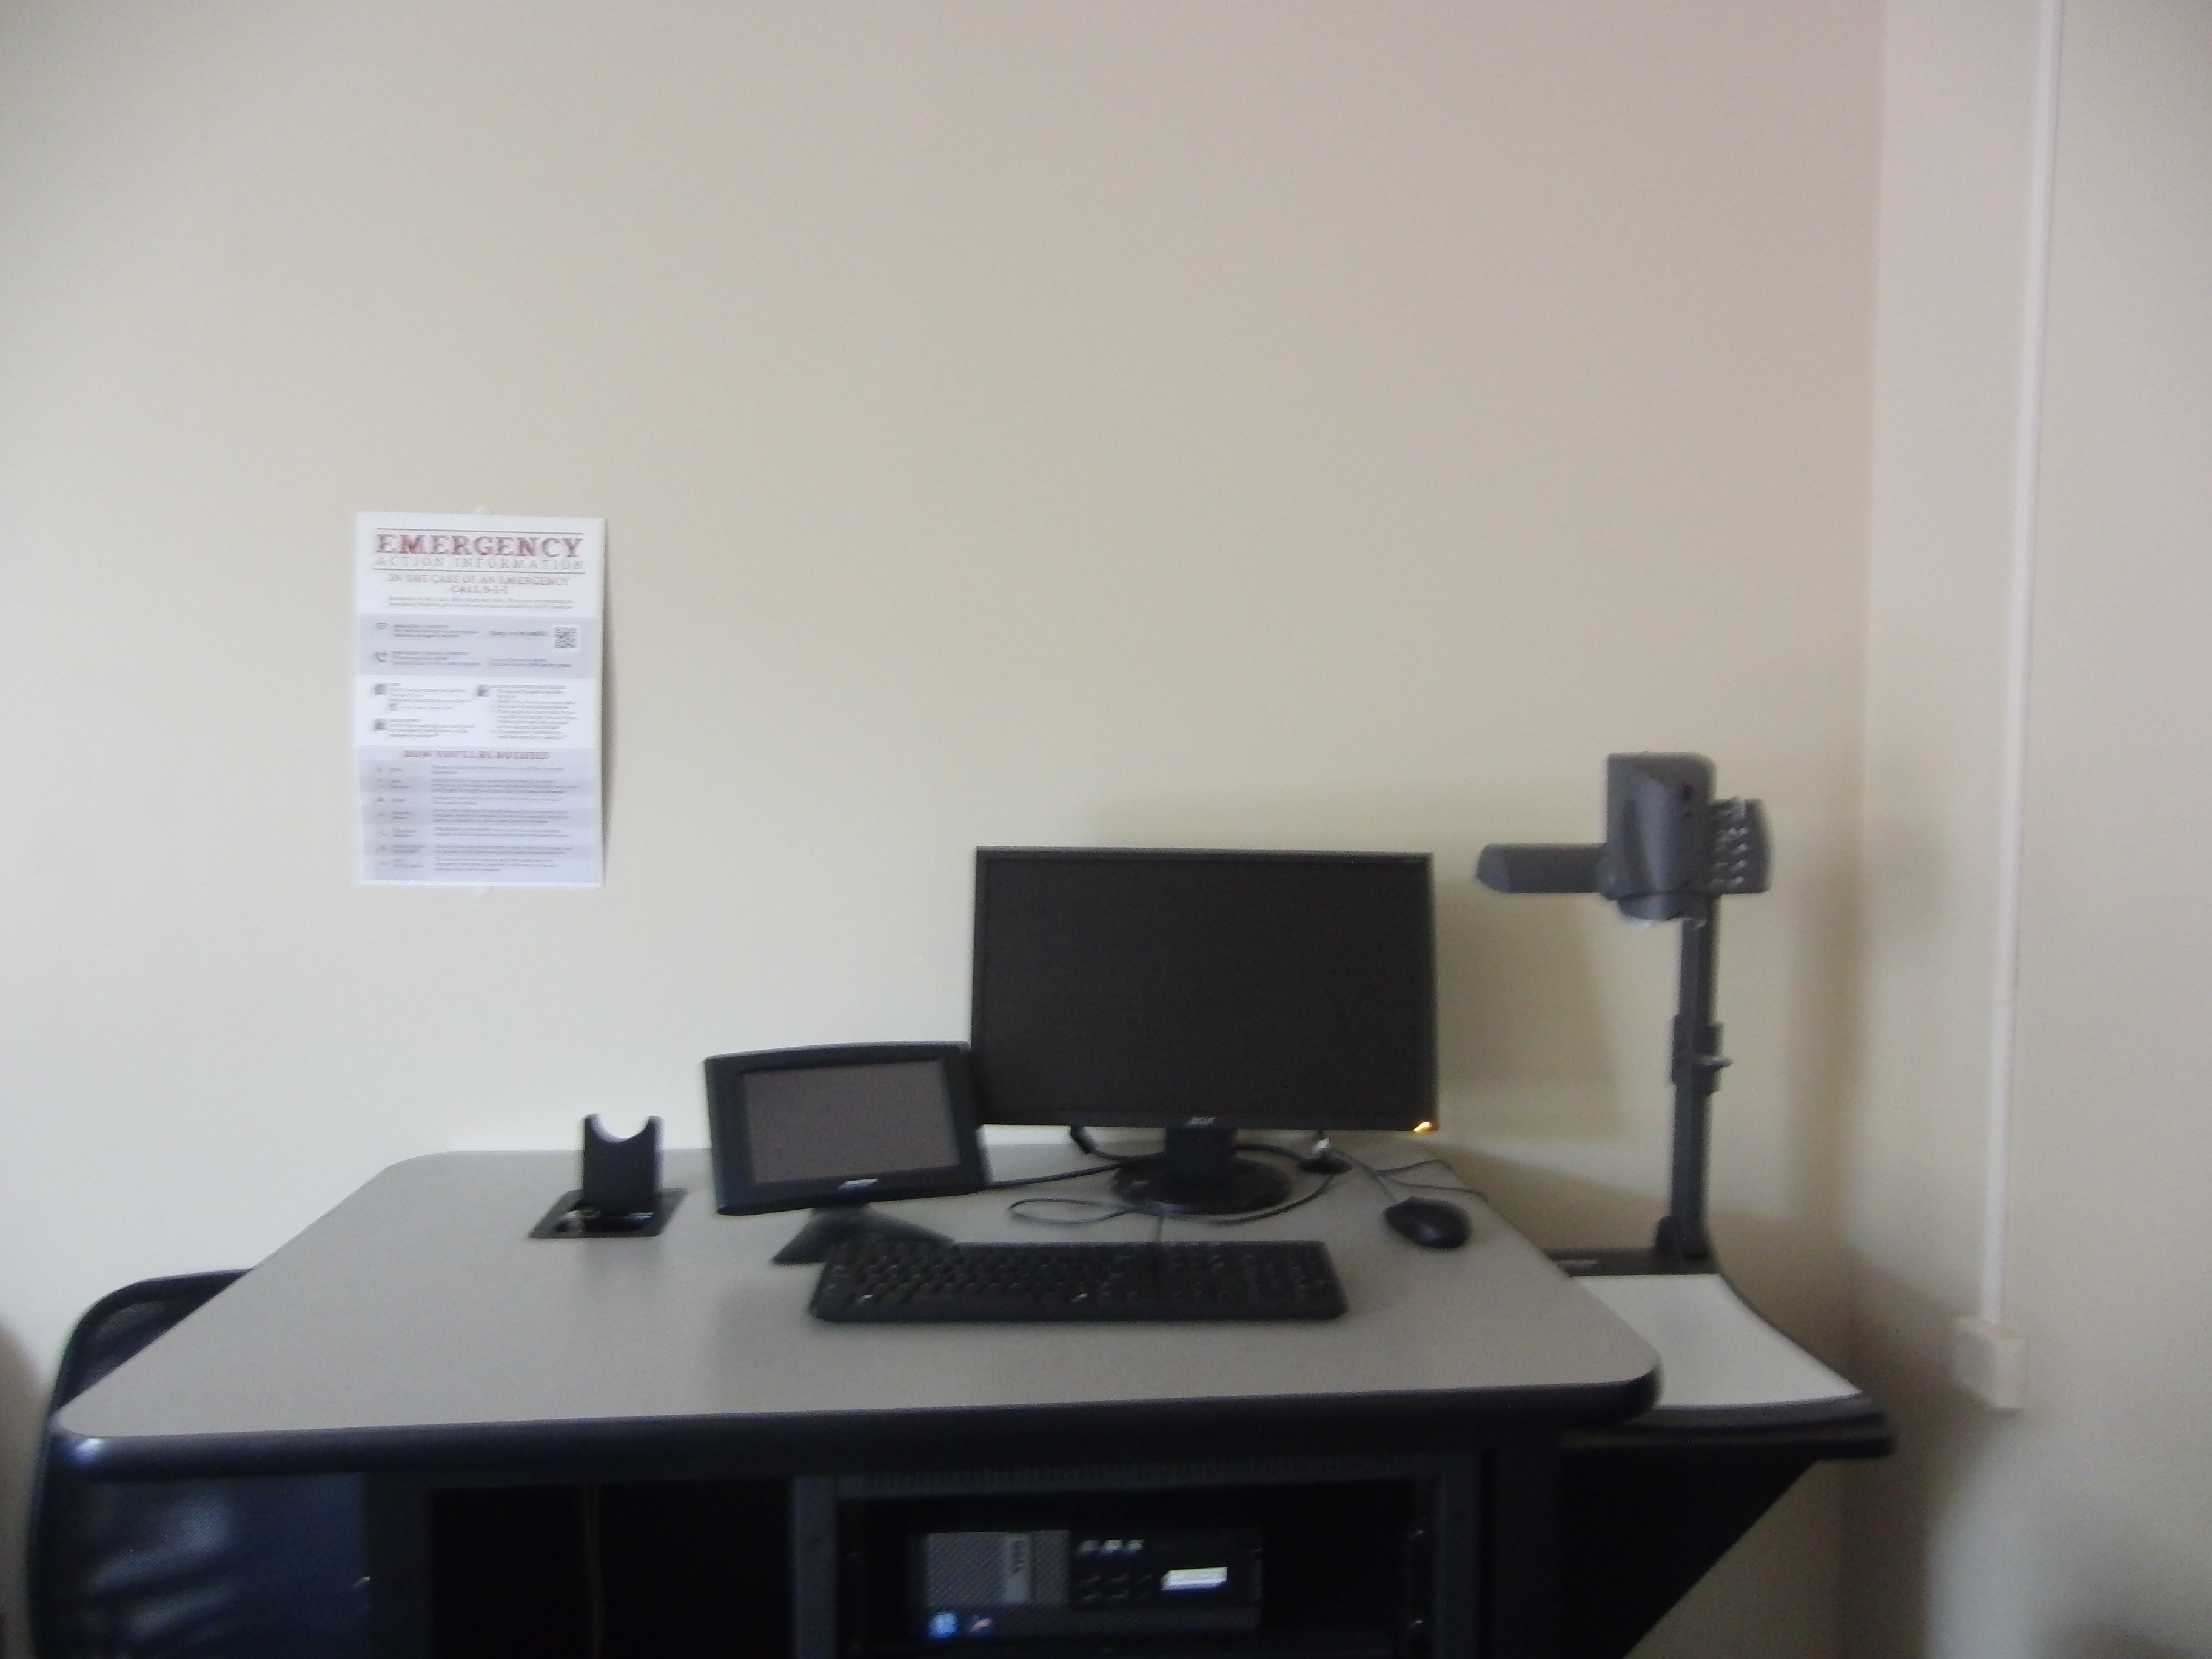 Photo of instructor station showing cable cubby, crestron control touch panel, dell computer, and document camera